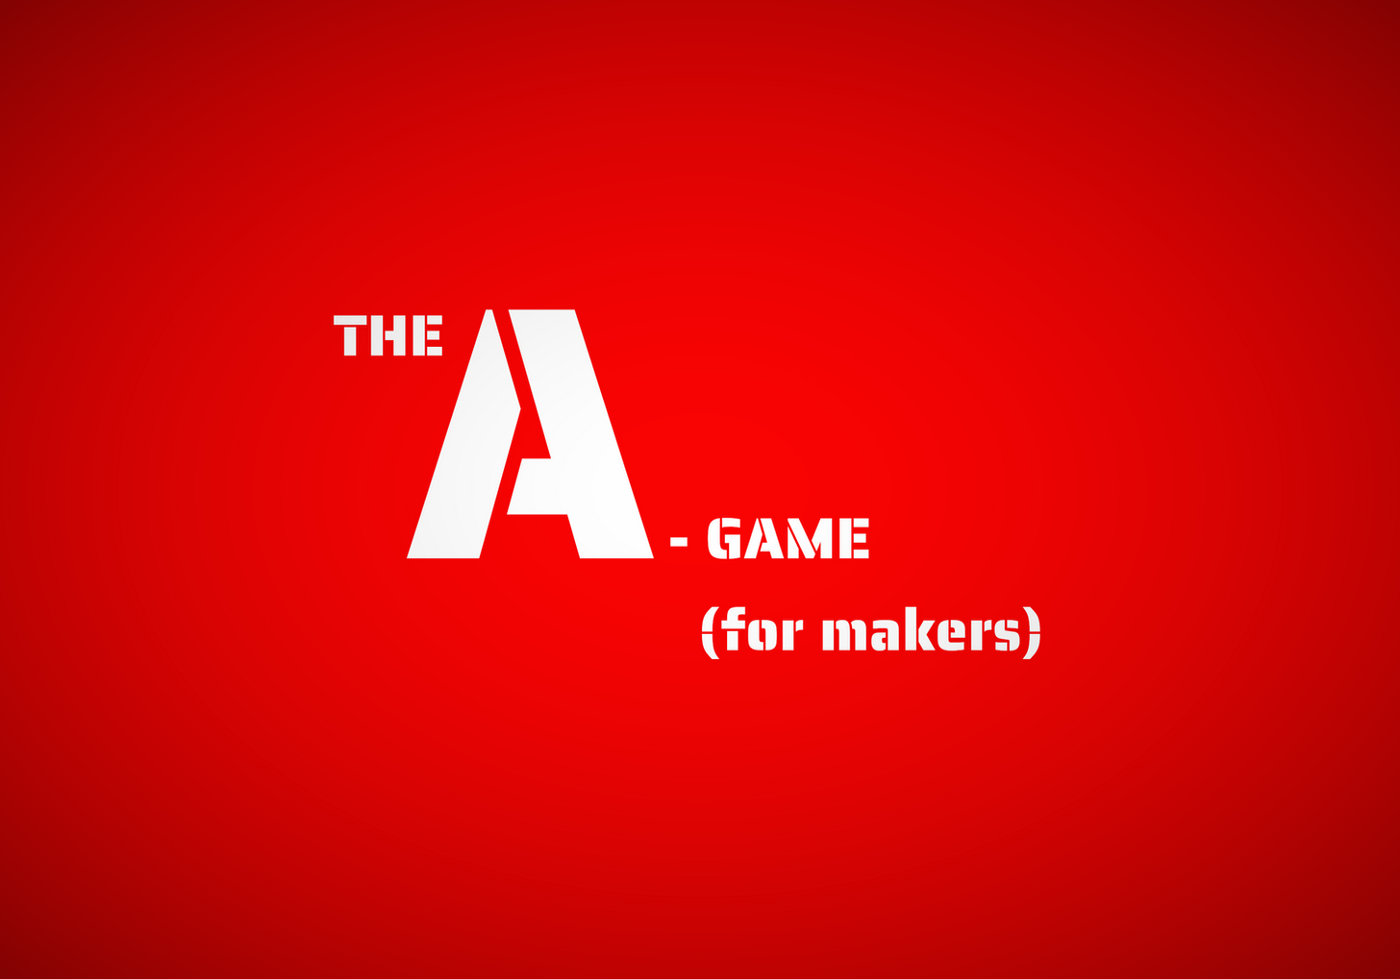 """A bright red background with white stencil lettering """"THE A-GAME (for makers)."""